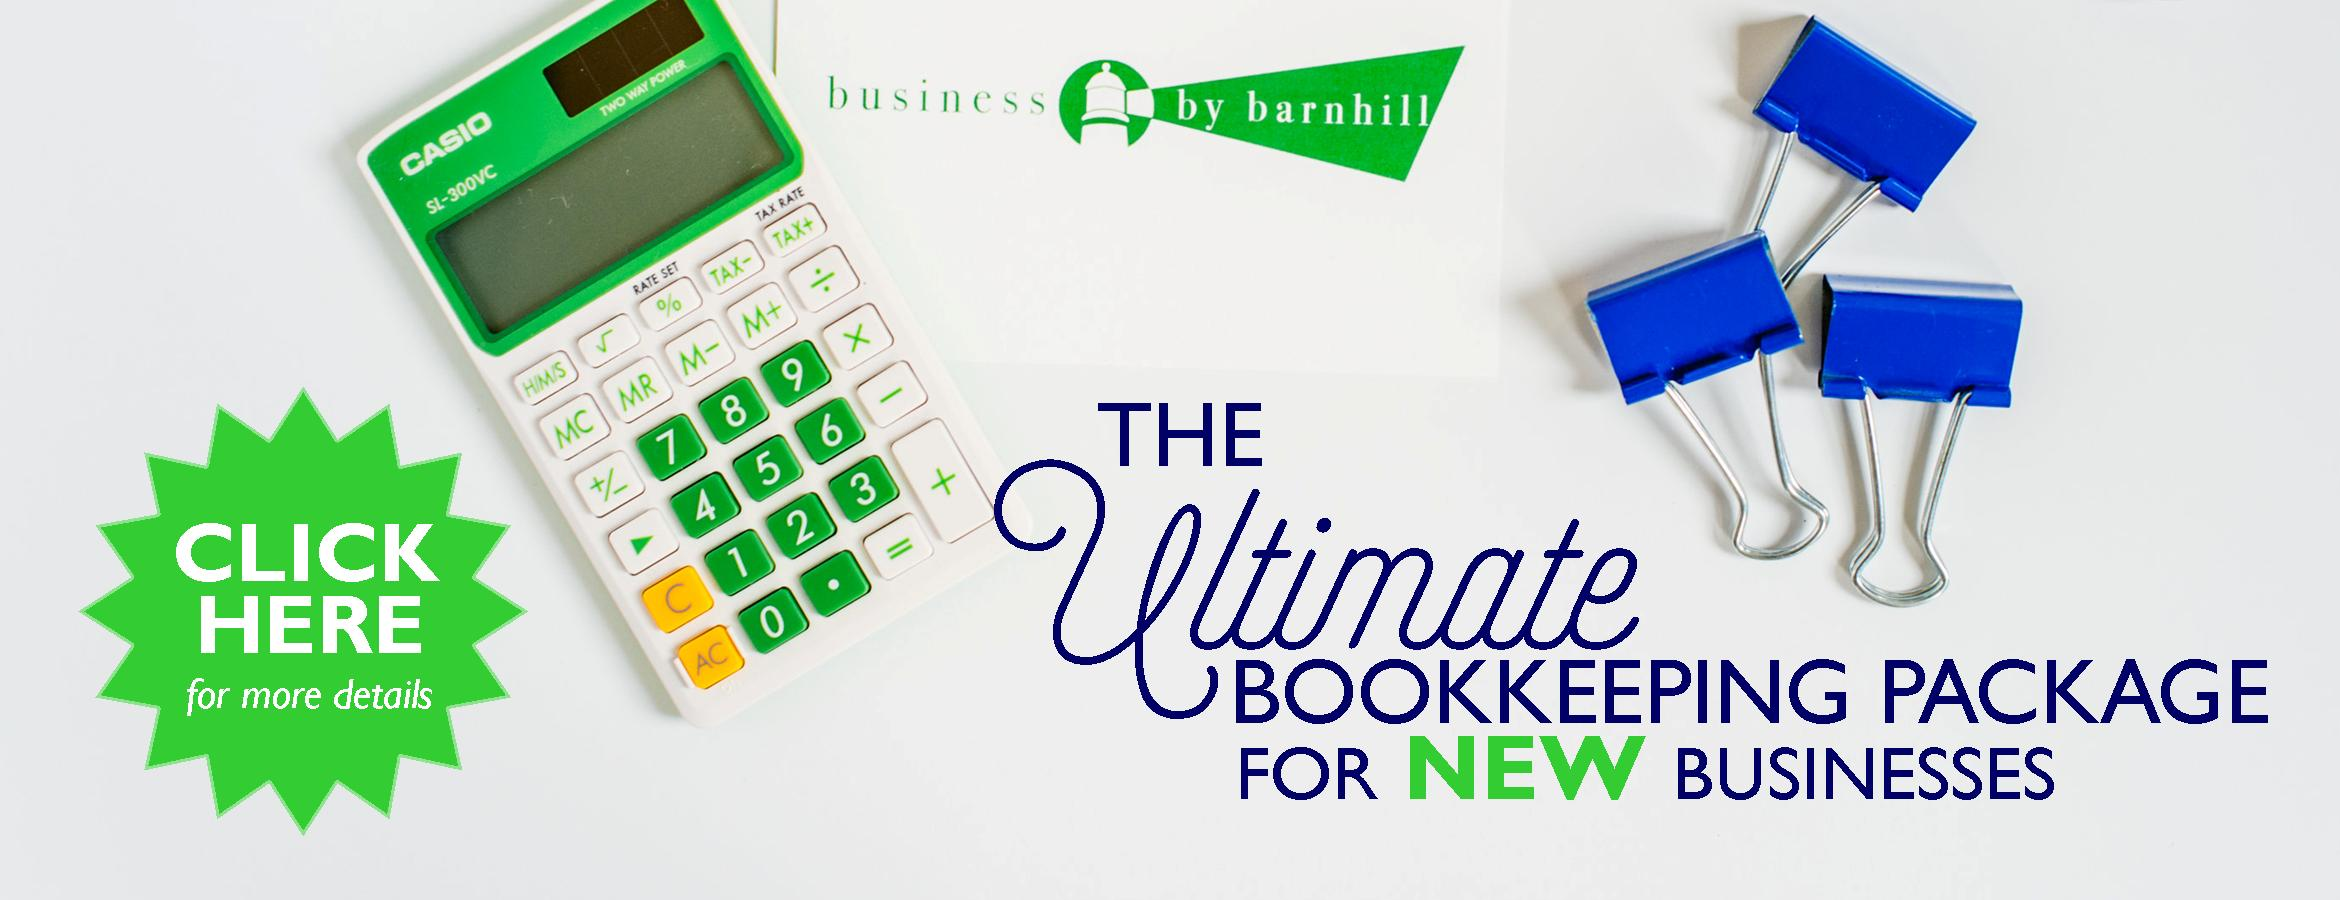 business by barnhill ultimate new small business bookkeeping package website 2.jpg